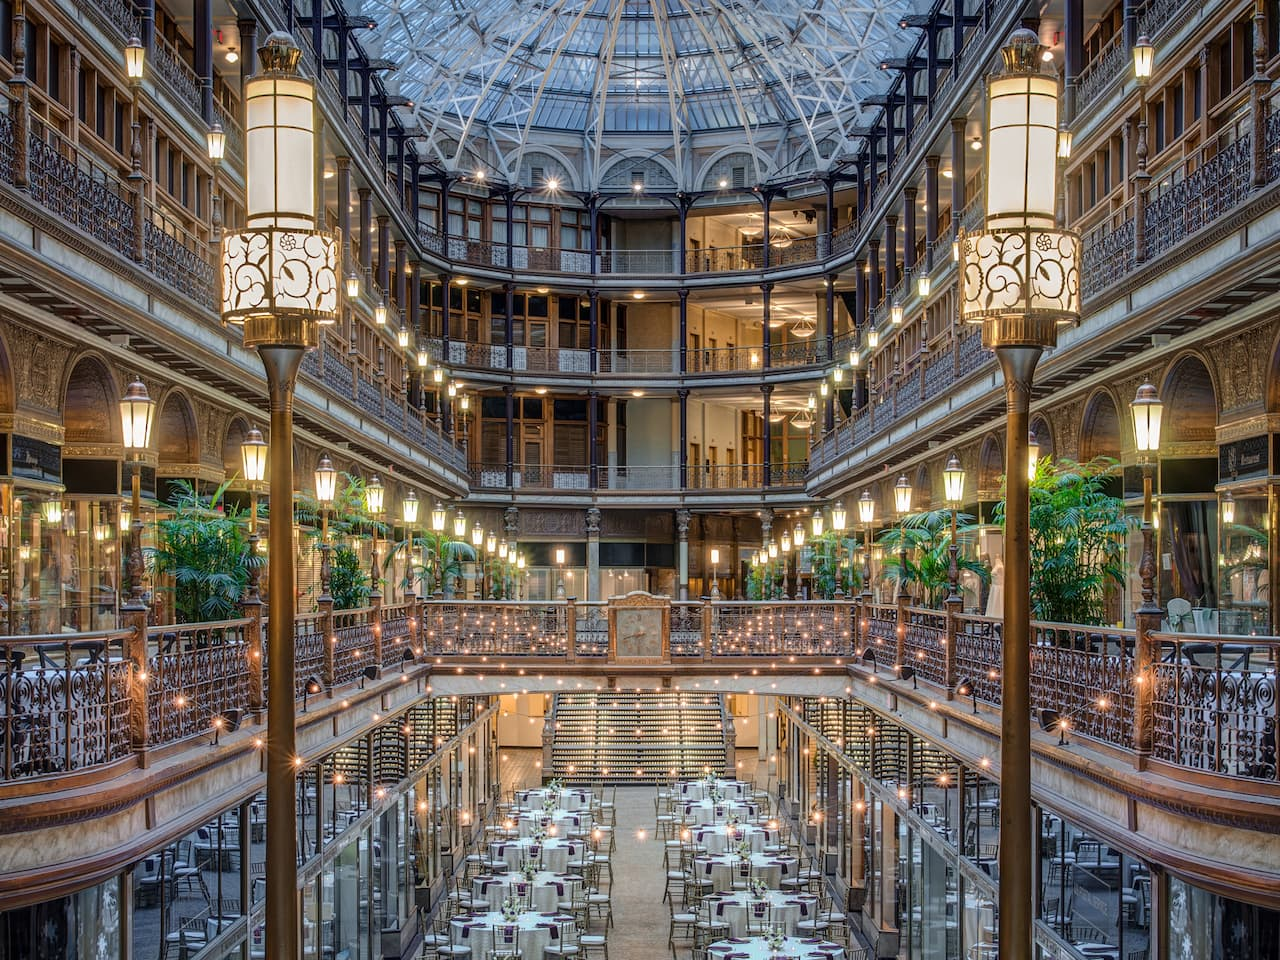 Wedding Venues in Cleveland, OH – The Arcade at Hyatt Regency Cleveland